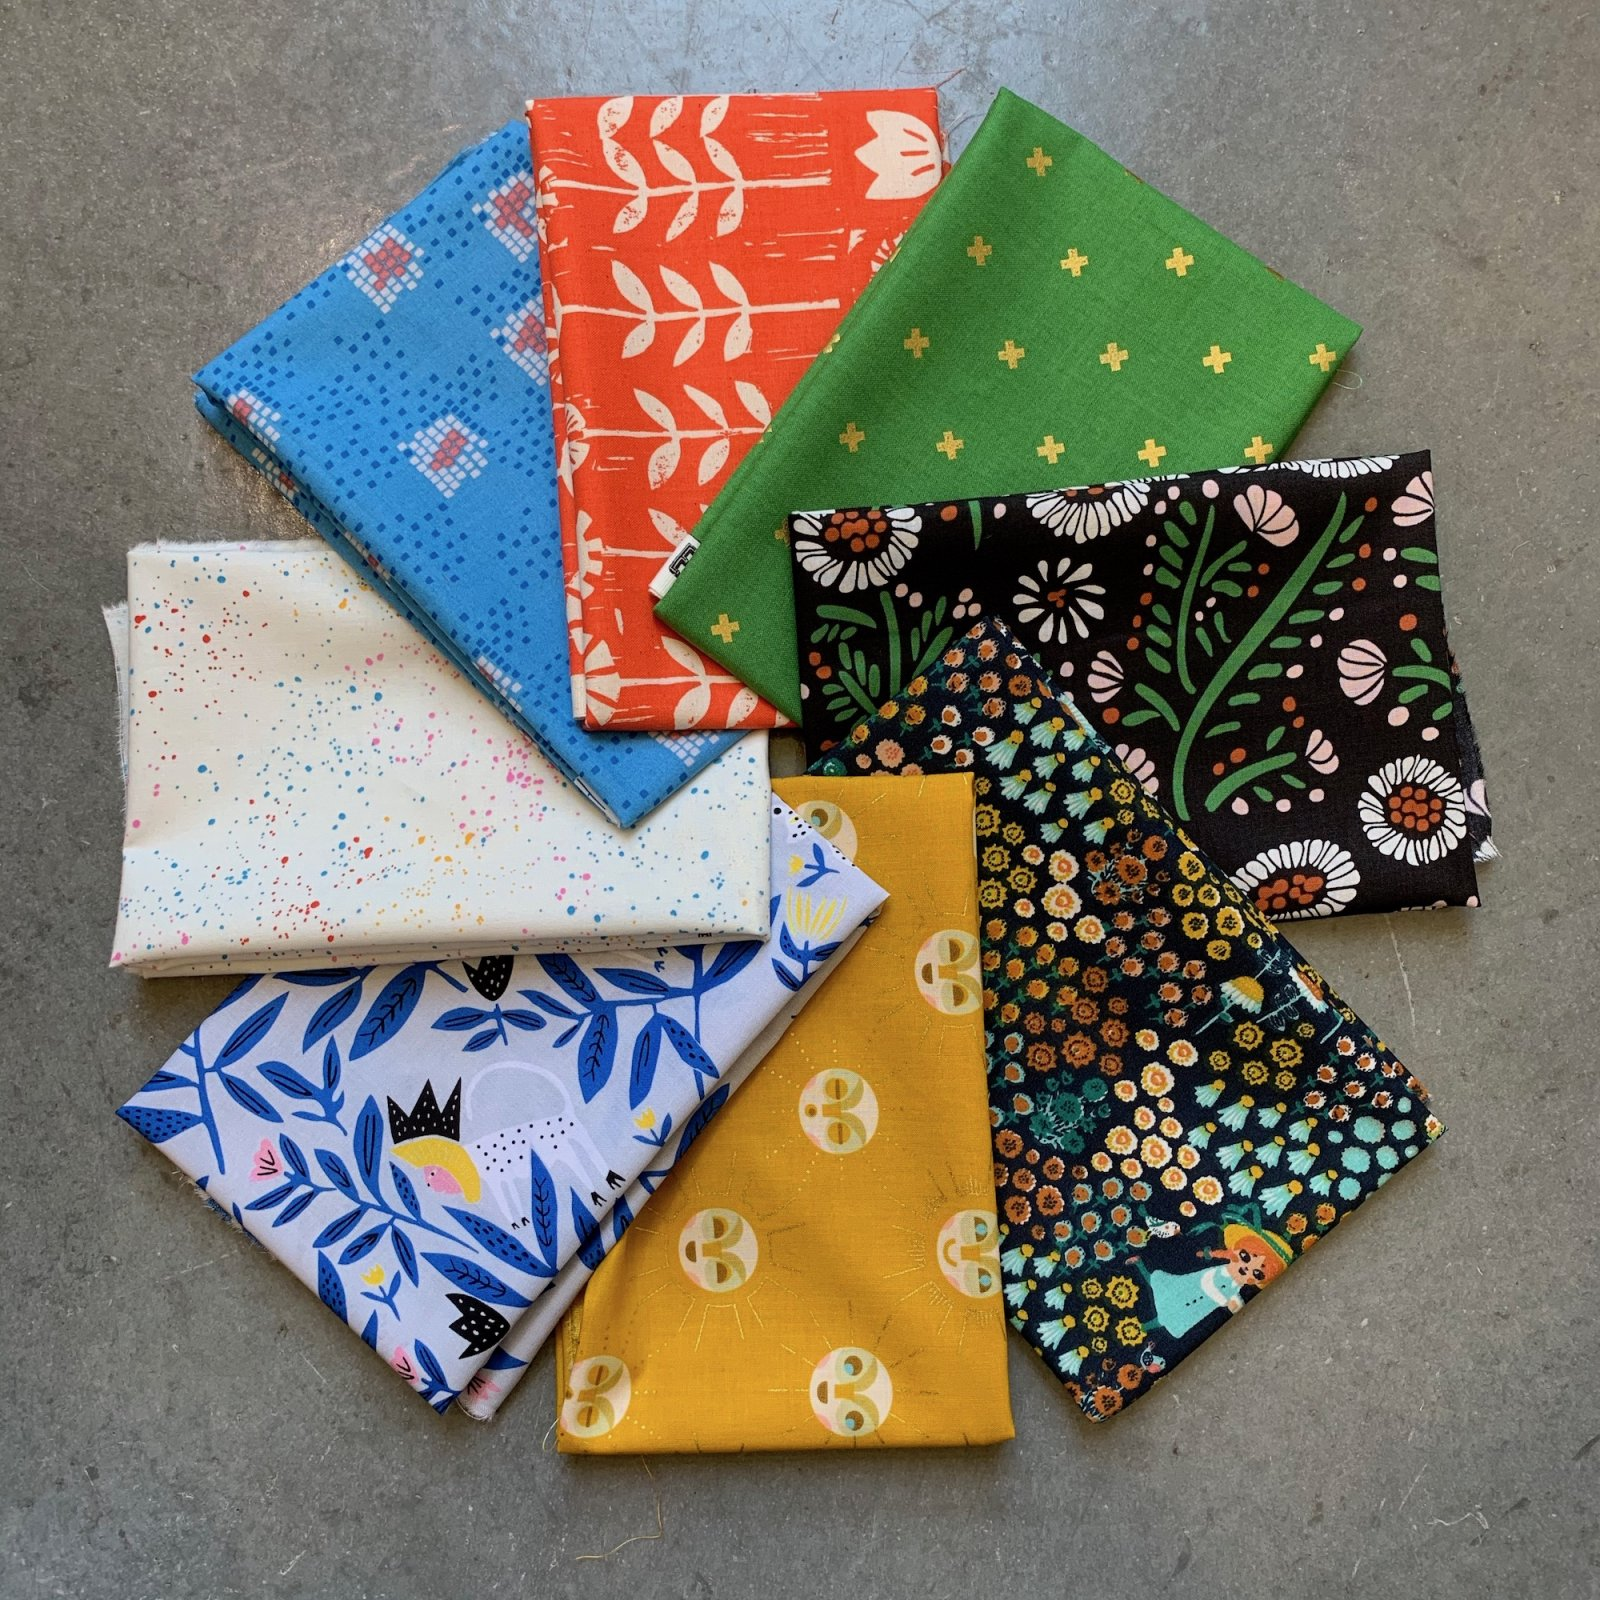 Kinder Garden, Fat Quarter Bundle, Collab with Stitched in Color